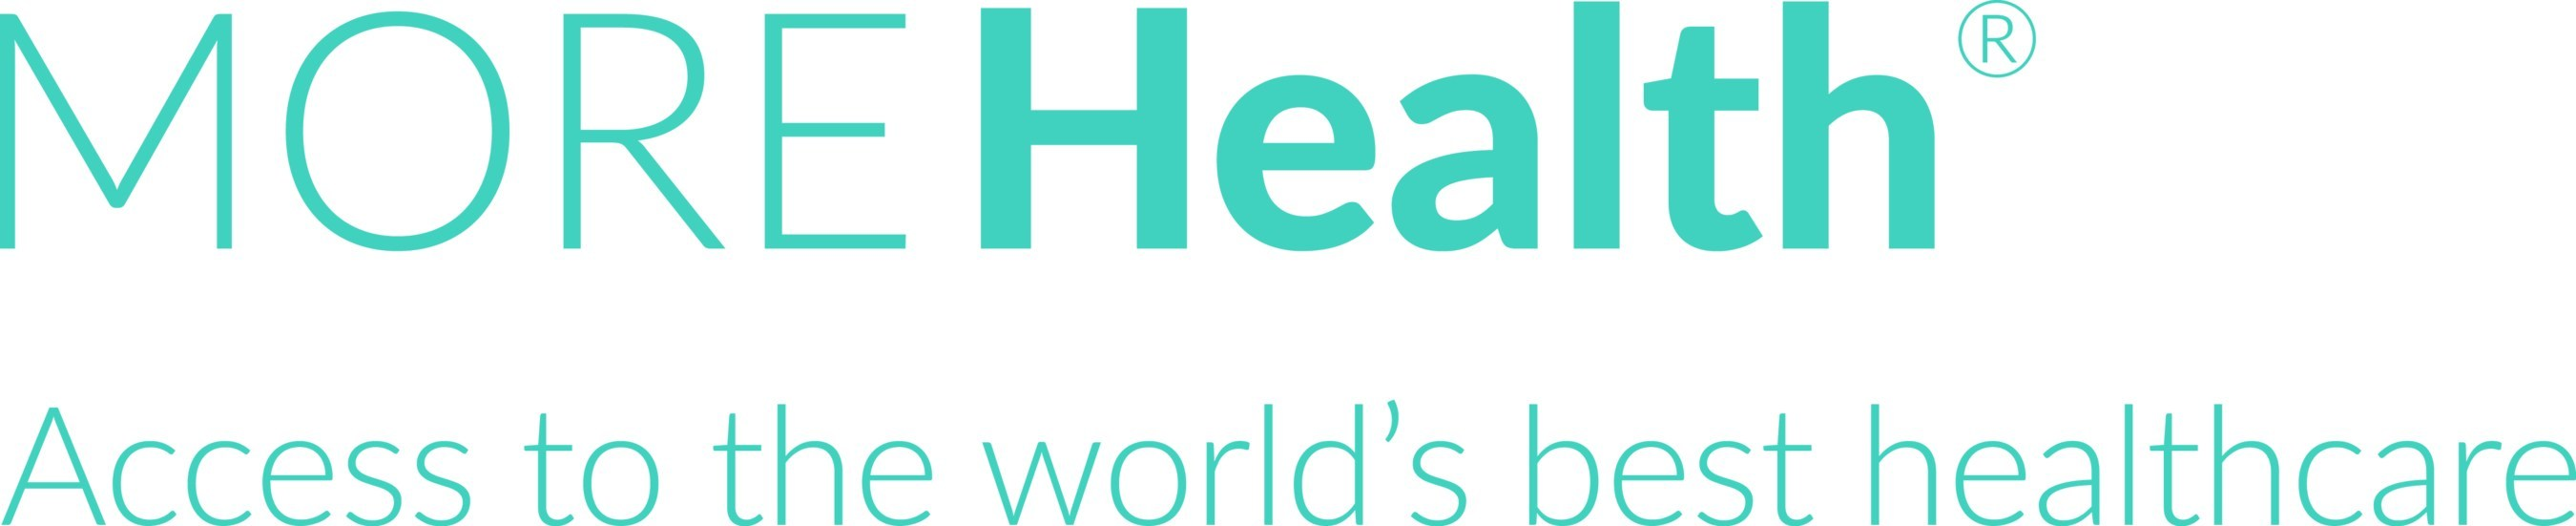 MORE Health - Access to the World's Best Healthcare (PRNewsfoto/MORE Health, Inc.)